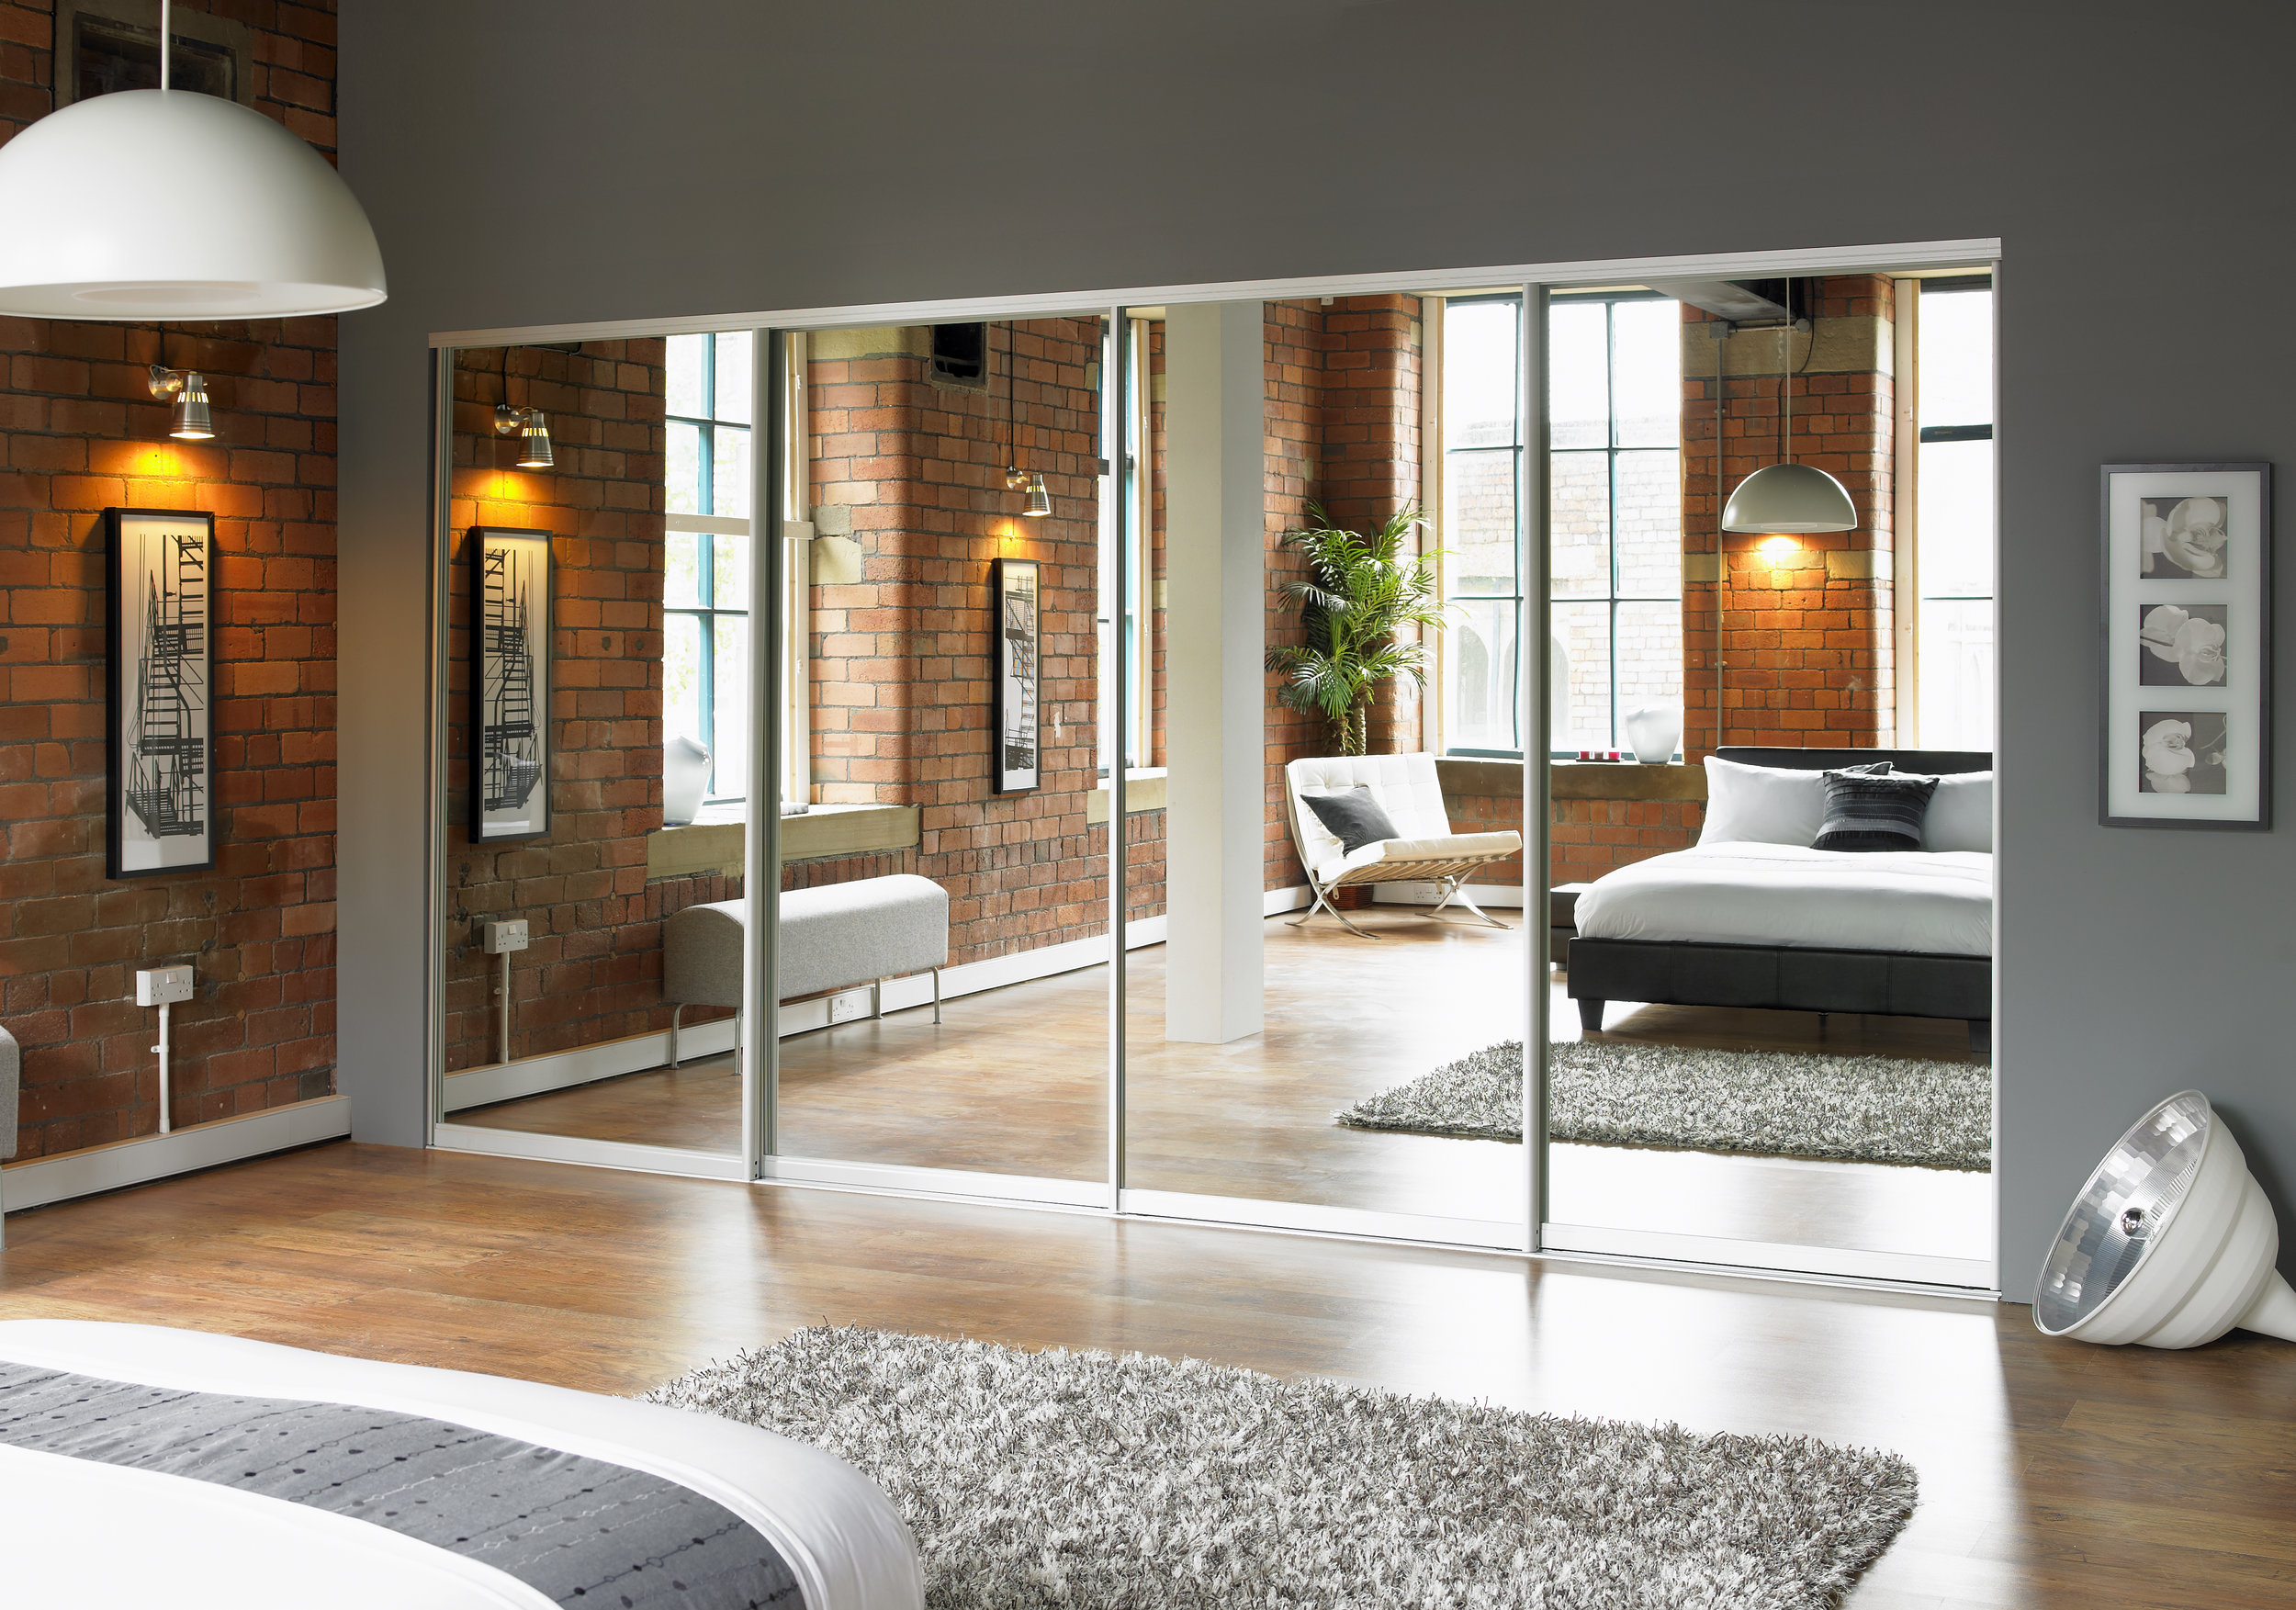 Our Simplicity sliding wardrobes, recently specified and installed in an industrial building conversion.